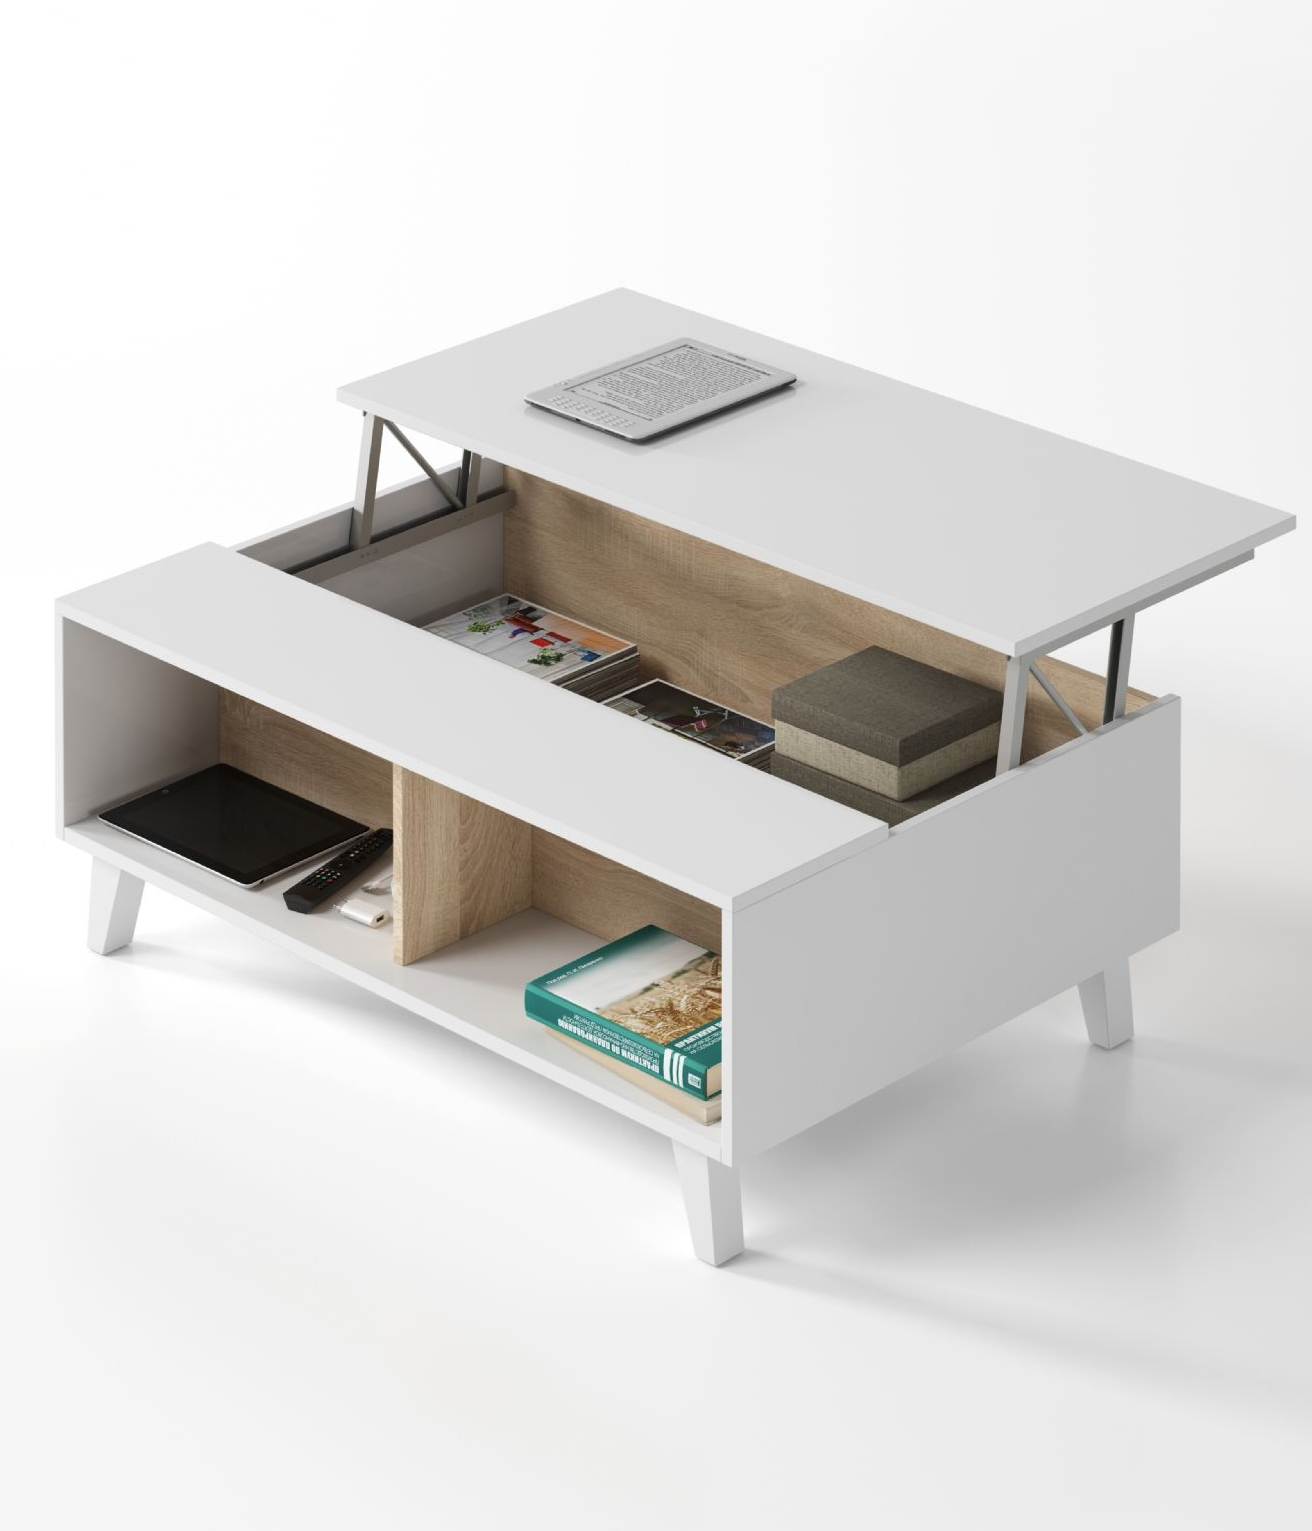 Bari Storage Coffee Table Soft White Gloss With Oak Effect Pertaining To Most Recently Released Oak Storage Coffee Tables (View 16 of 20)